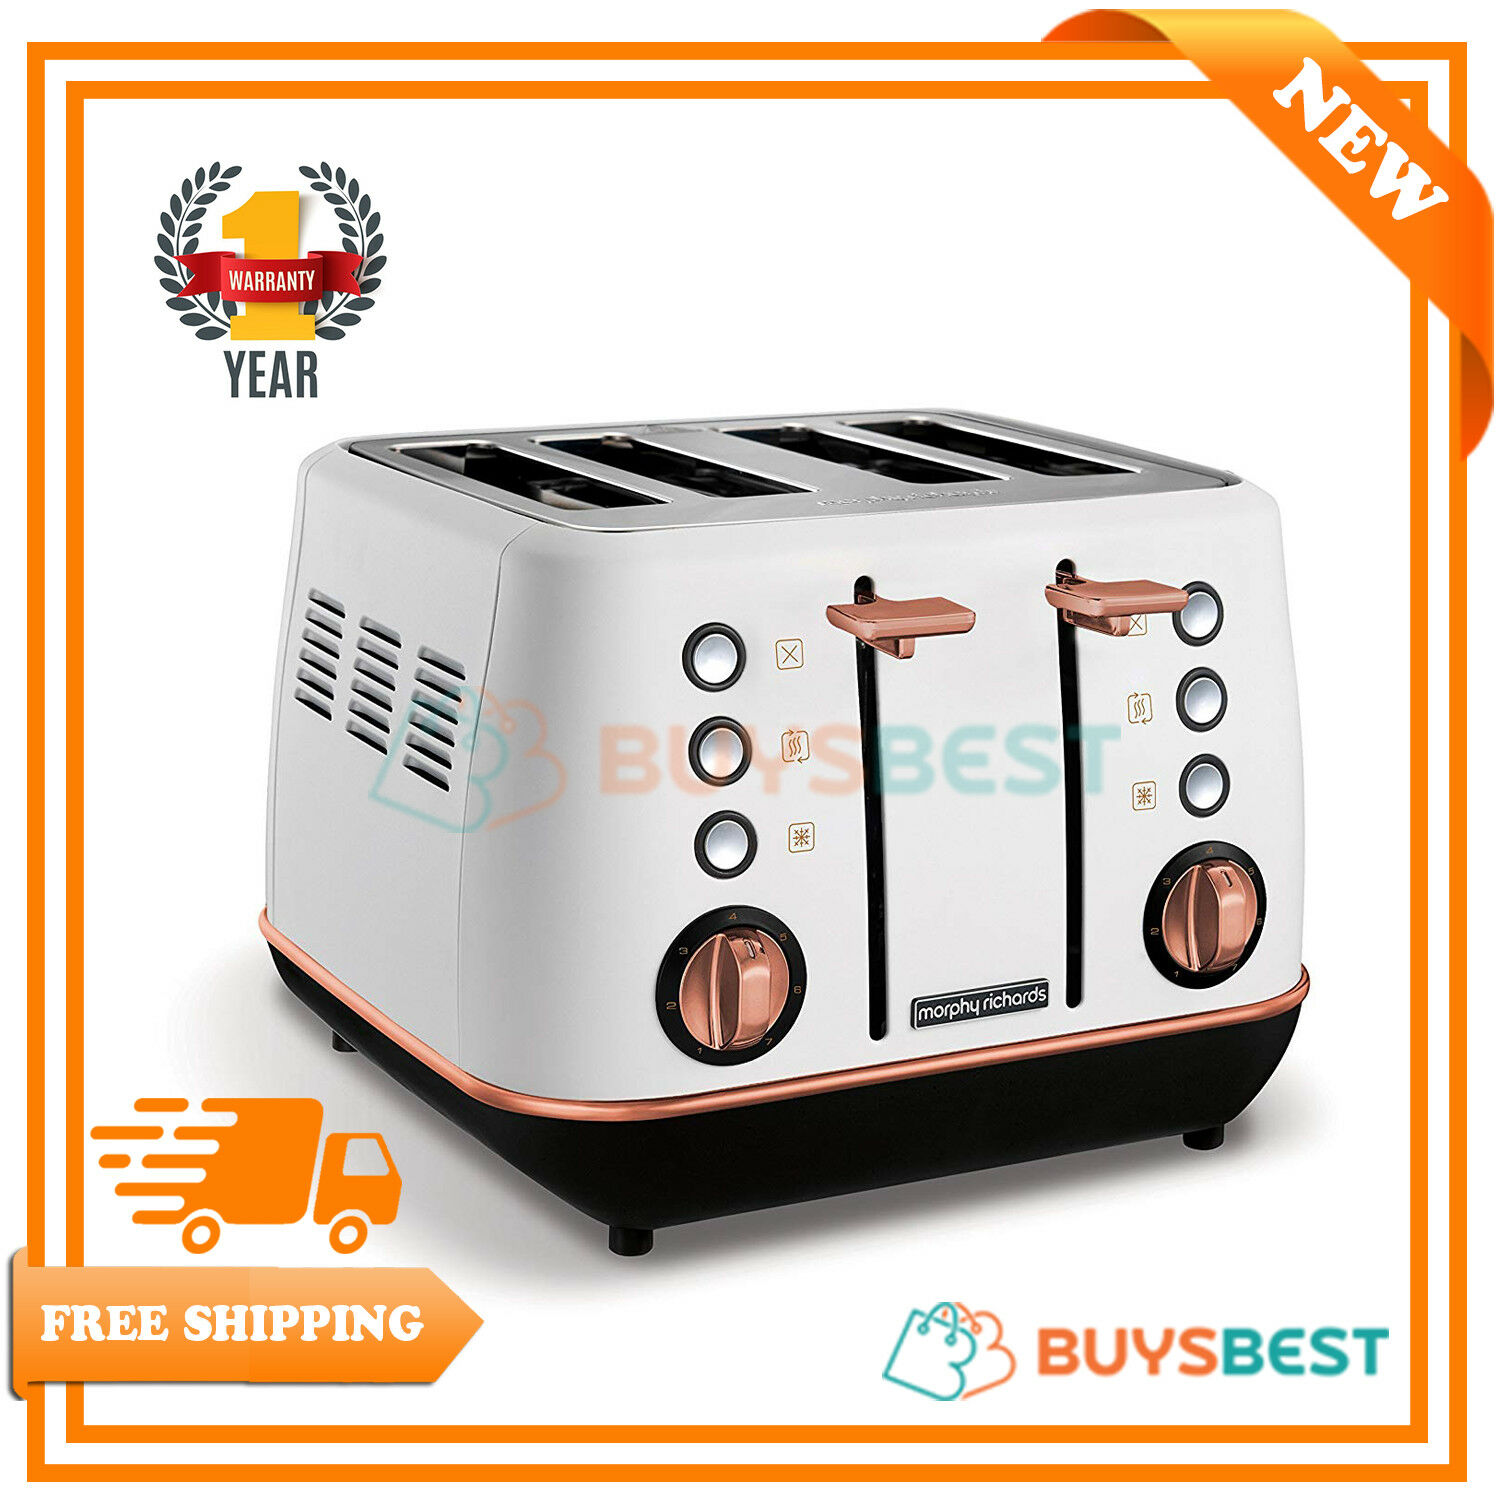 Morphy Richards Evoke Special Edition 4 Slice Toaster White & pink gold - 240115